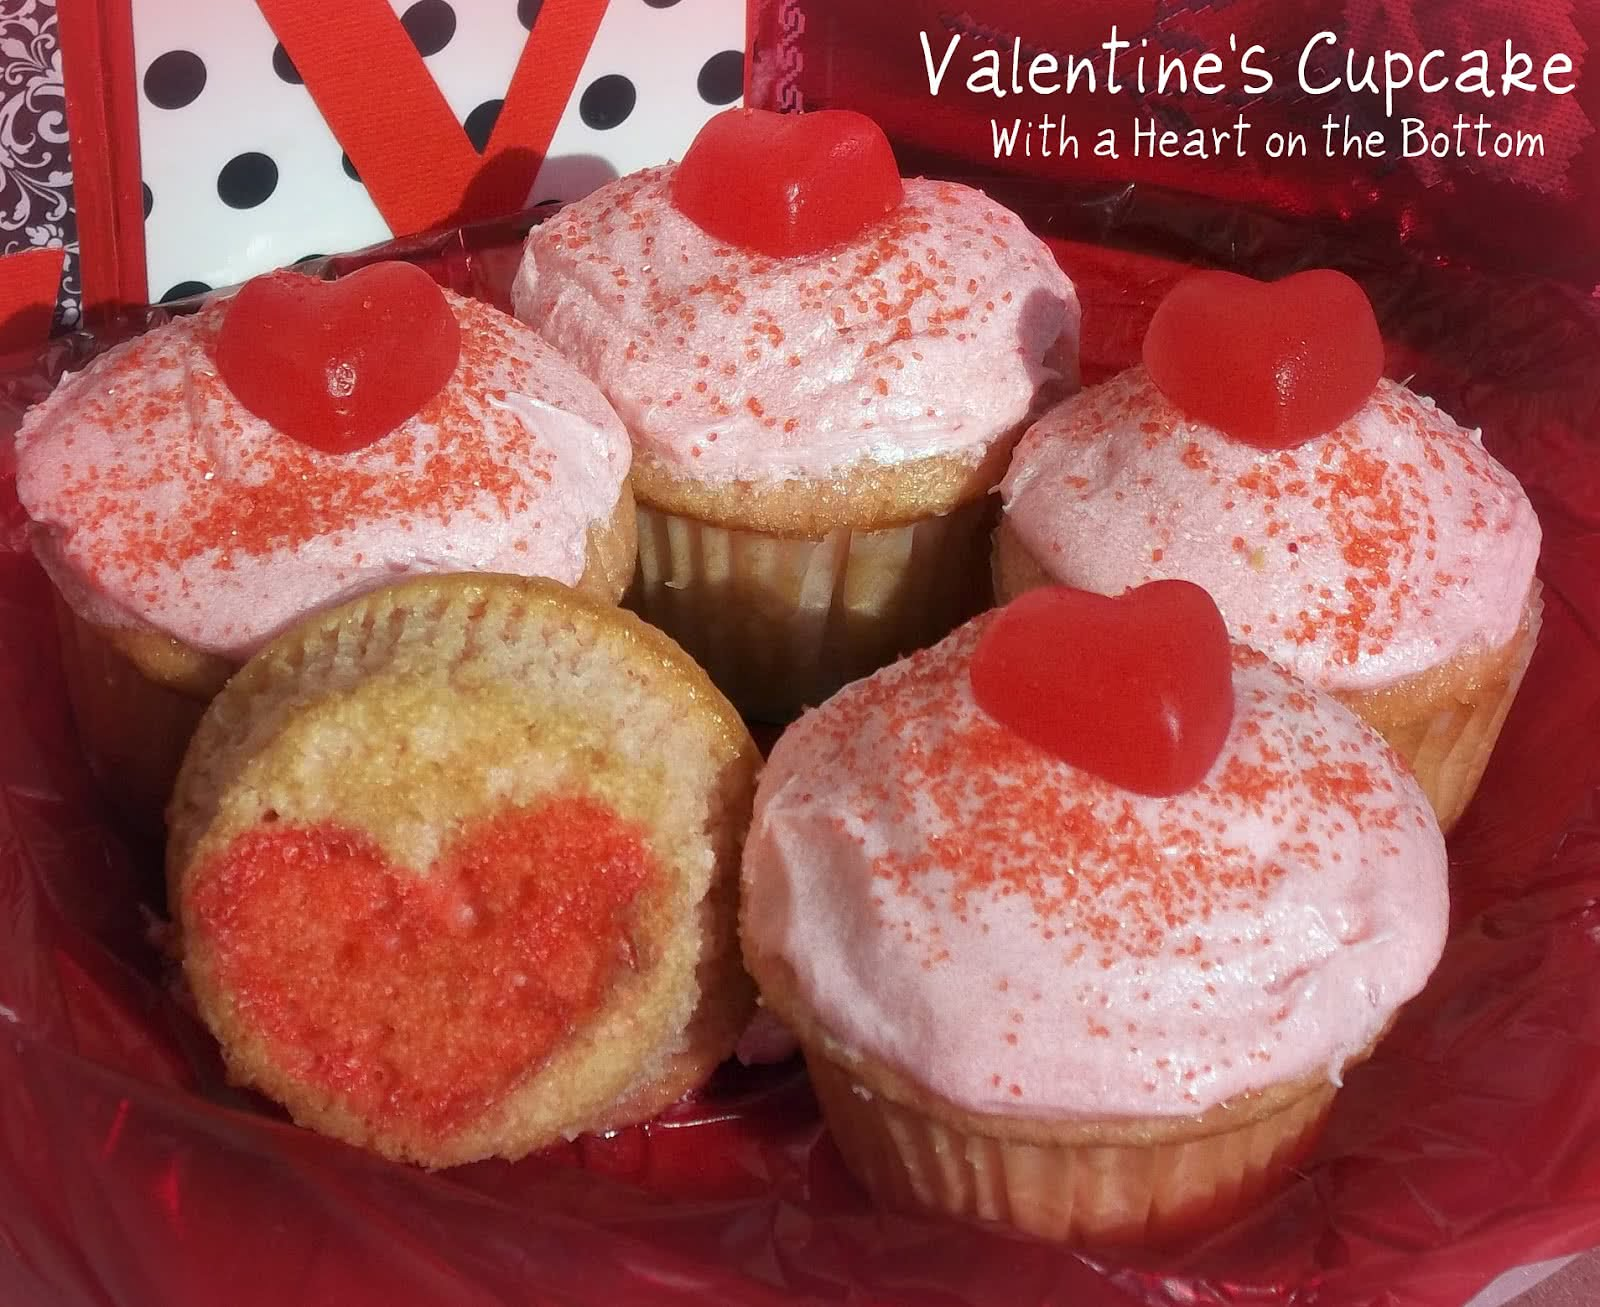 Valentine's Cupcakes with a Heart on the Bottom